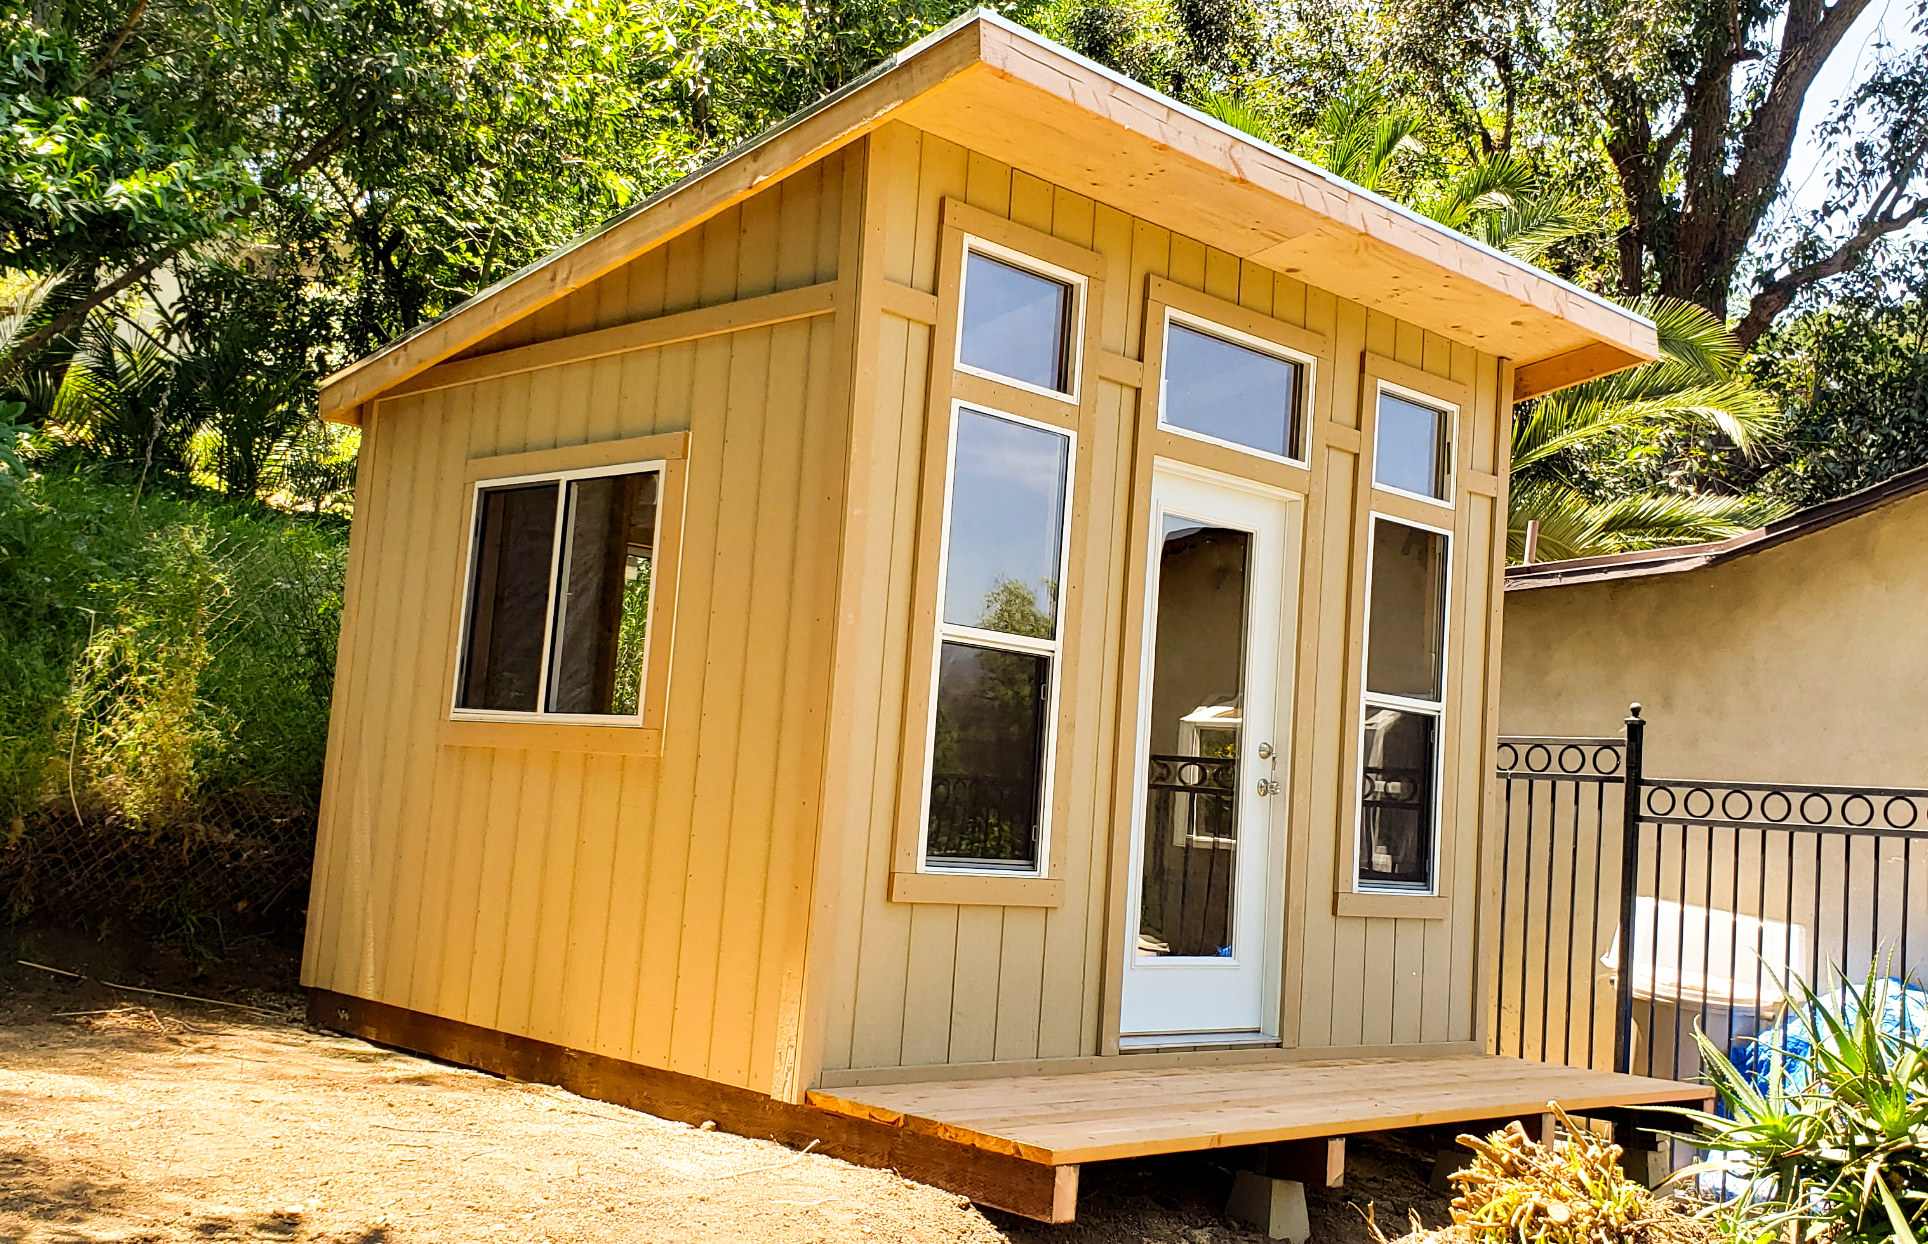 10 x 12 Studio Shed shown with optional windows added and front deck